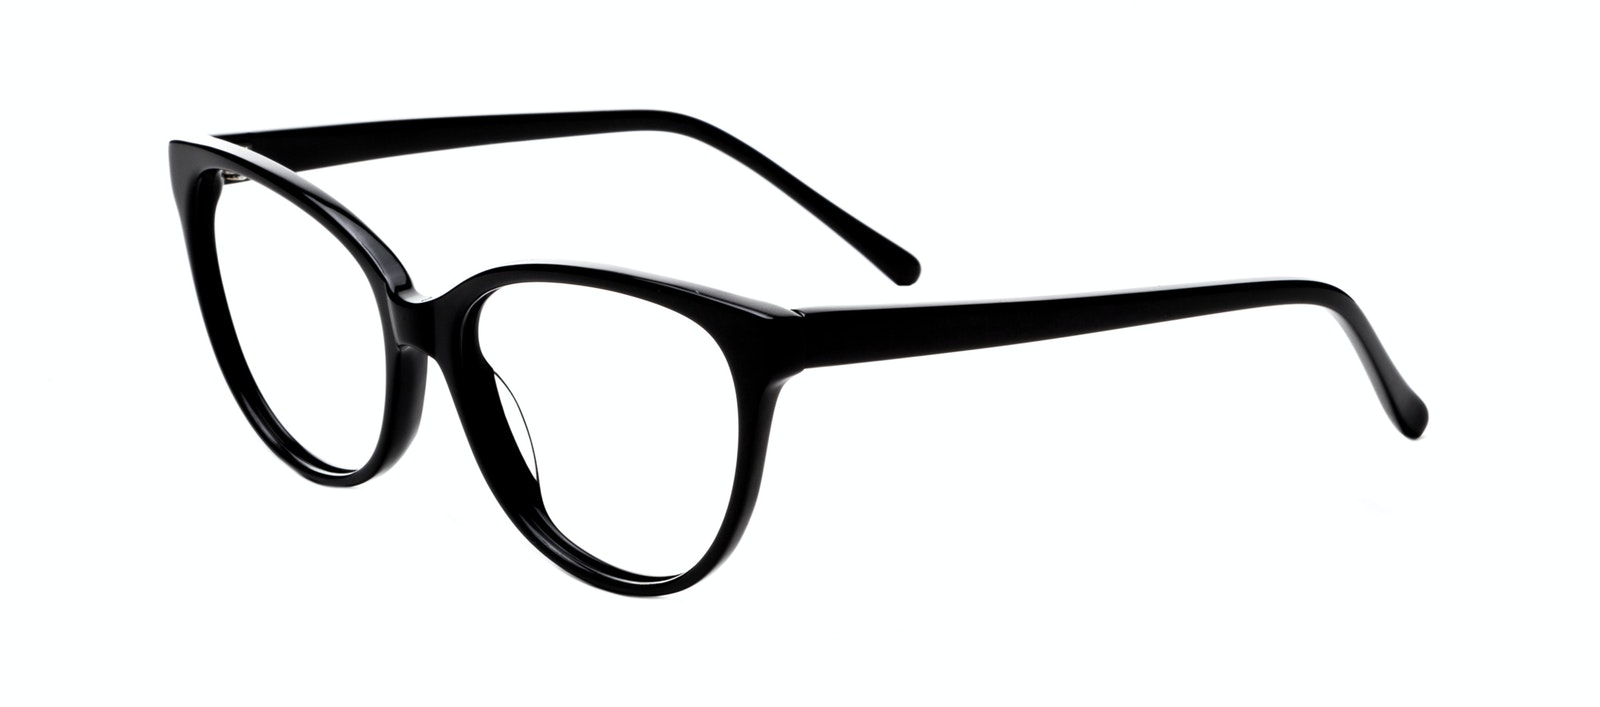 Affordable Fashion Glasses Cat Eye Eyeglasses Women Imagine M Onyx Tilt